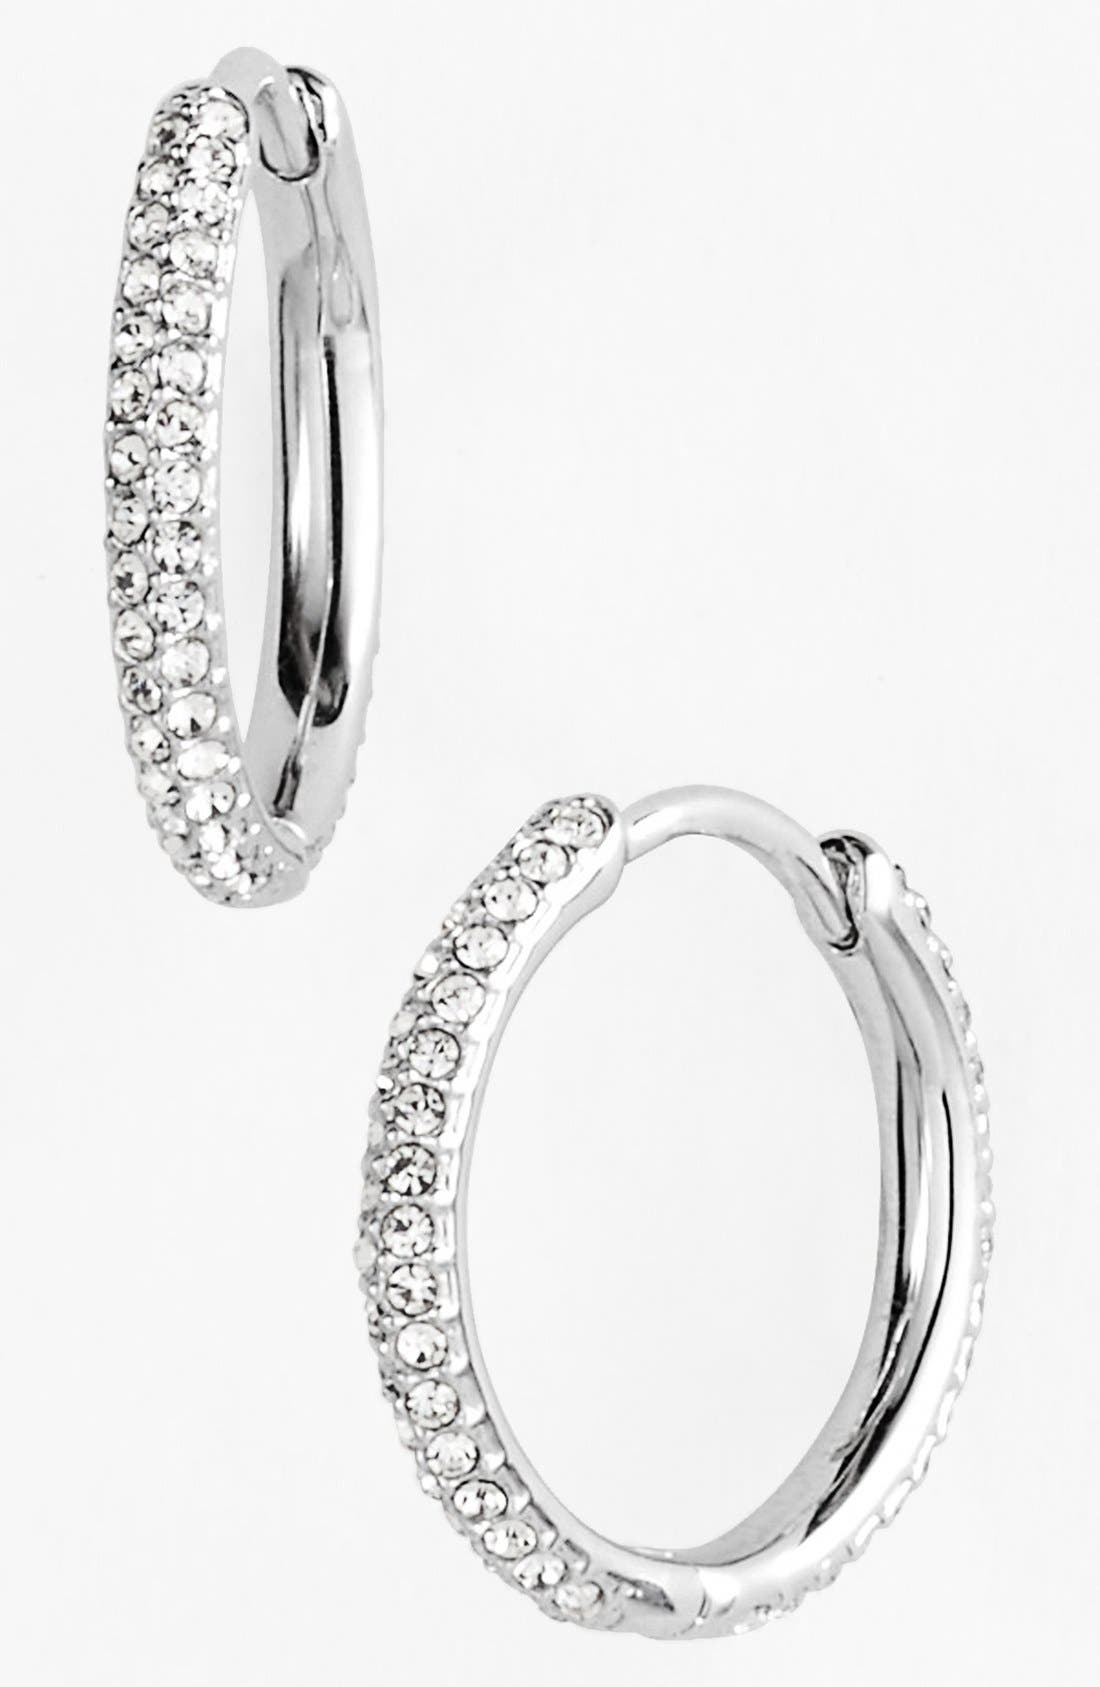 Main Image - Nadri Small Pavé Hoop Earrings (Nordstrom Exclusive)